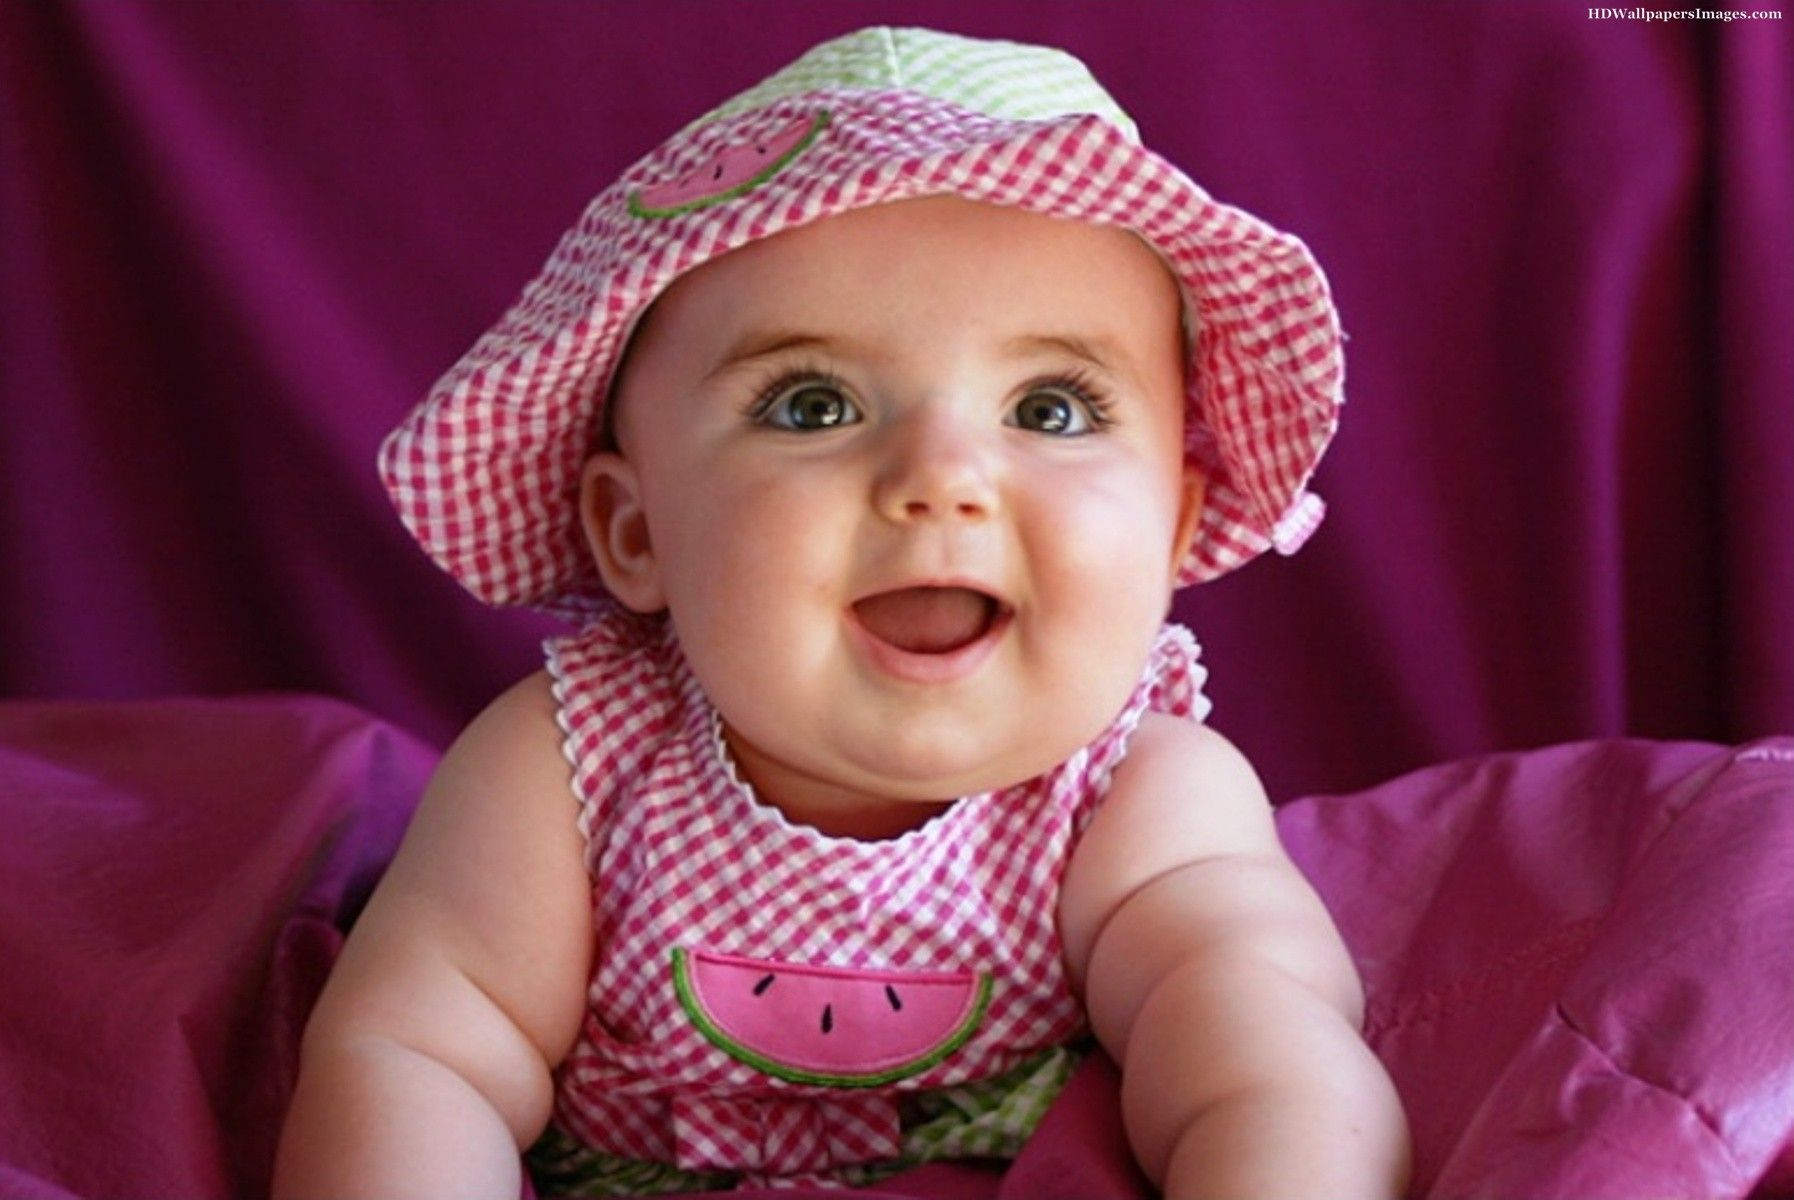 Smiling Beautiful Girl Baby Images Cute Baby Girl Images Cute Baby Wallpaper Baby Girl Images